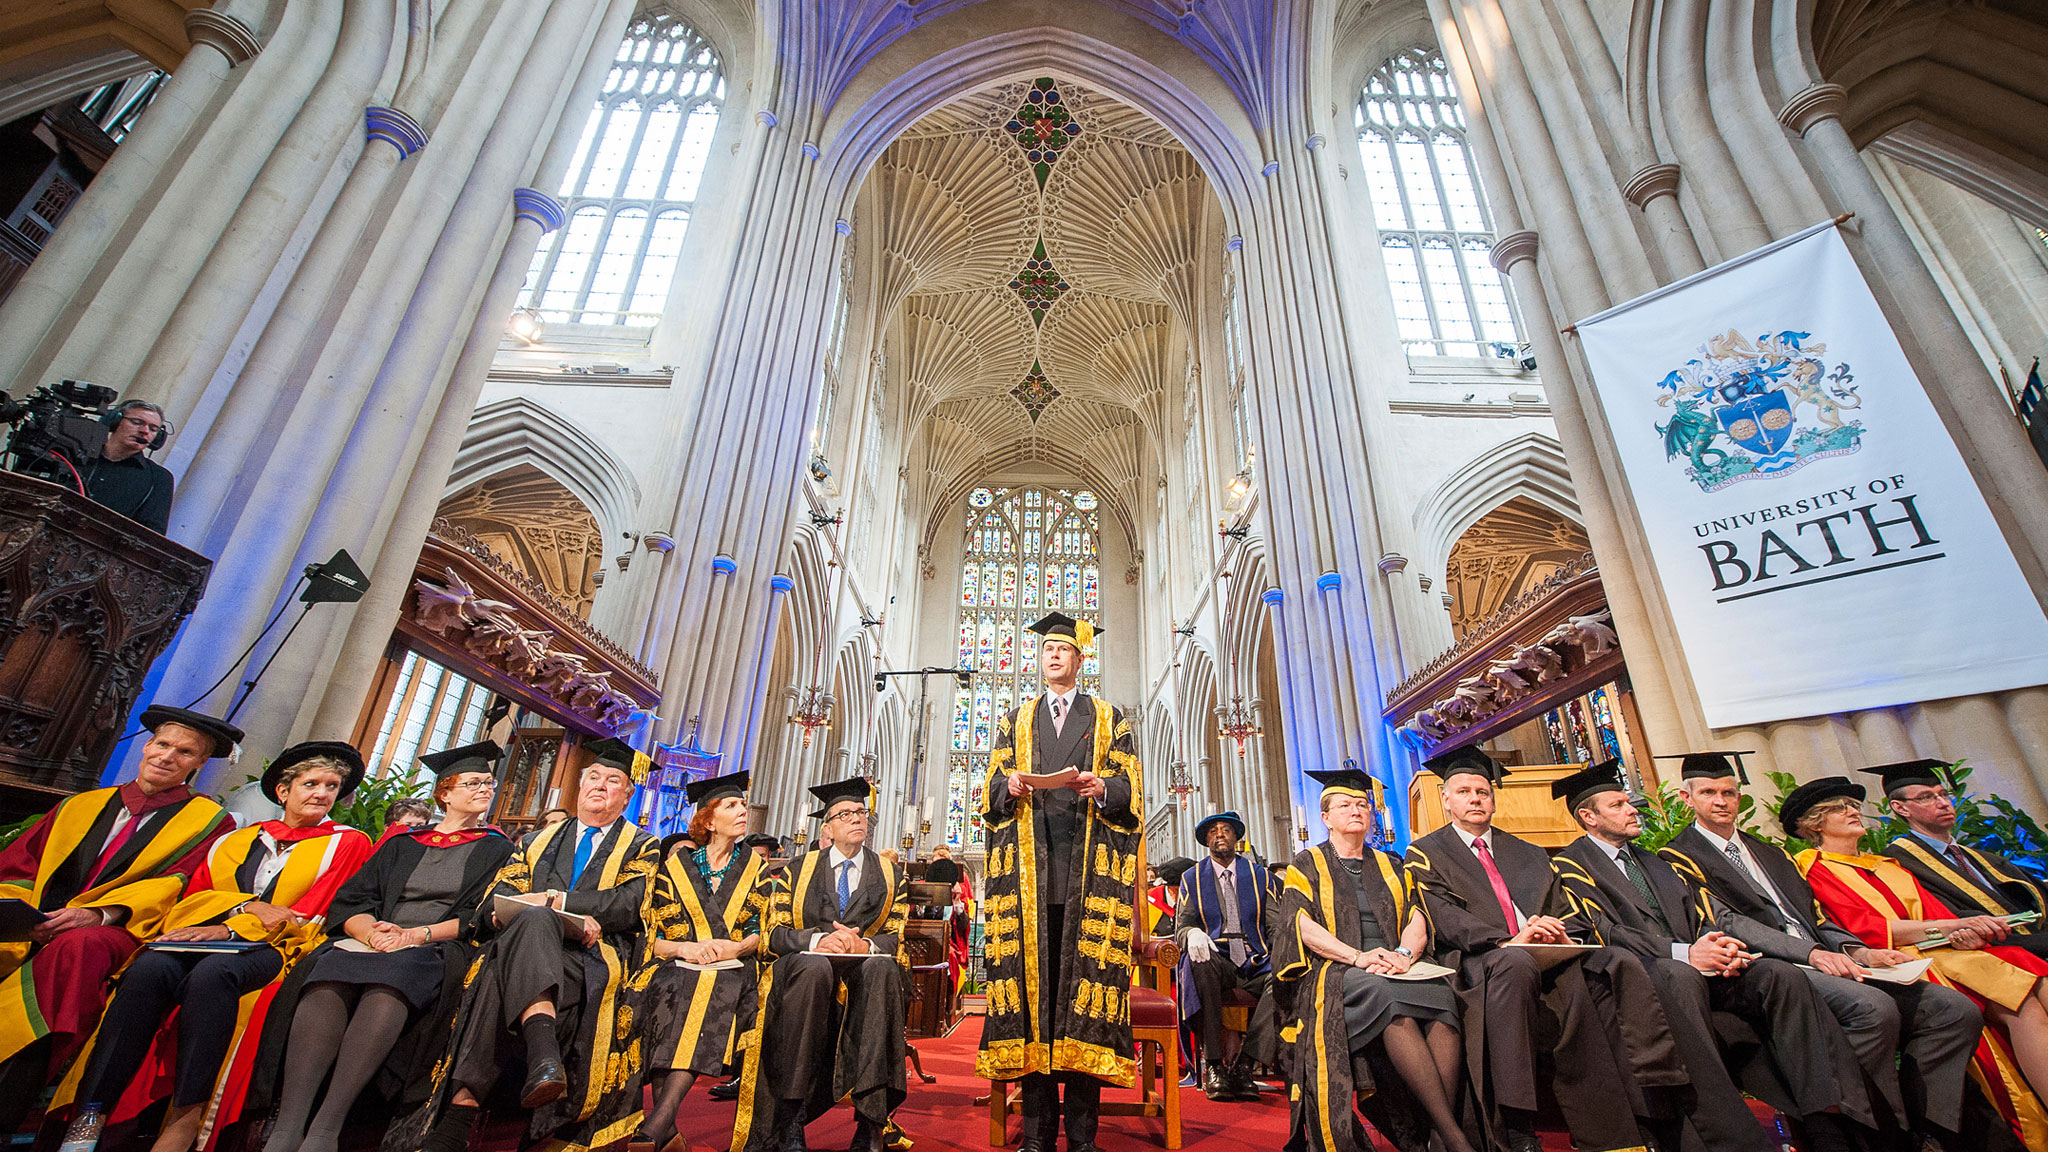 Award ceremony in Bath abbey